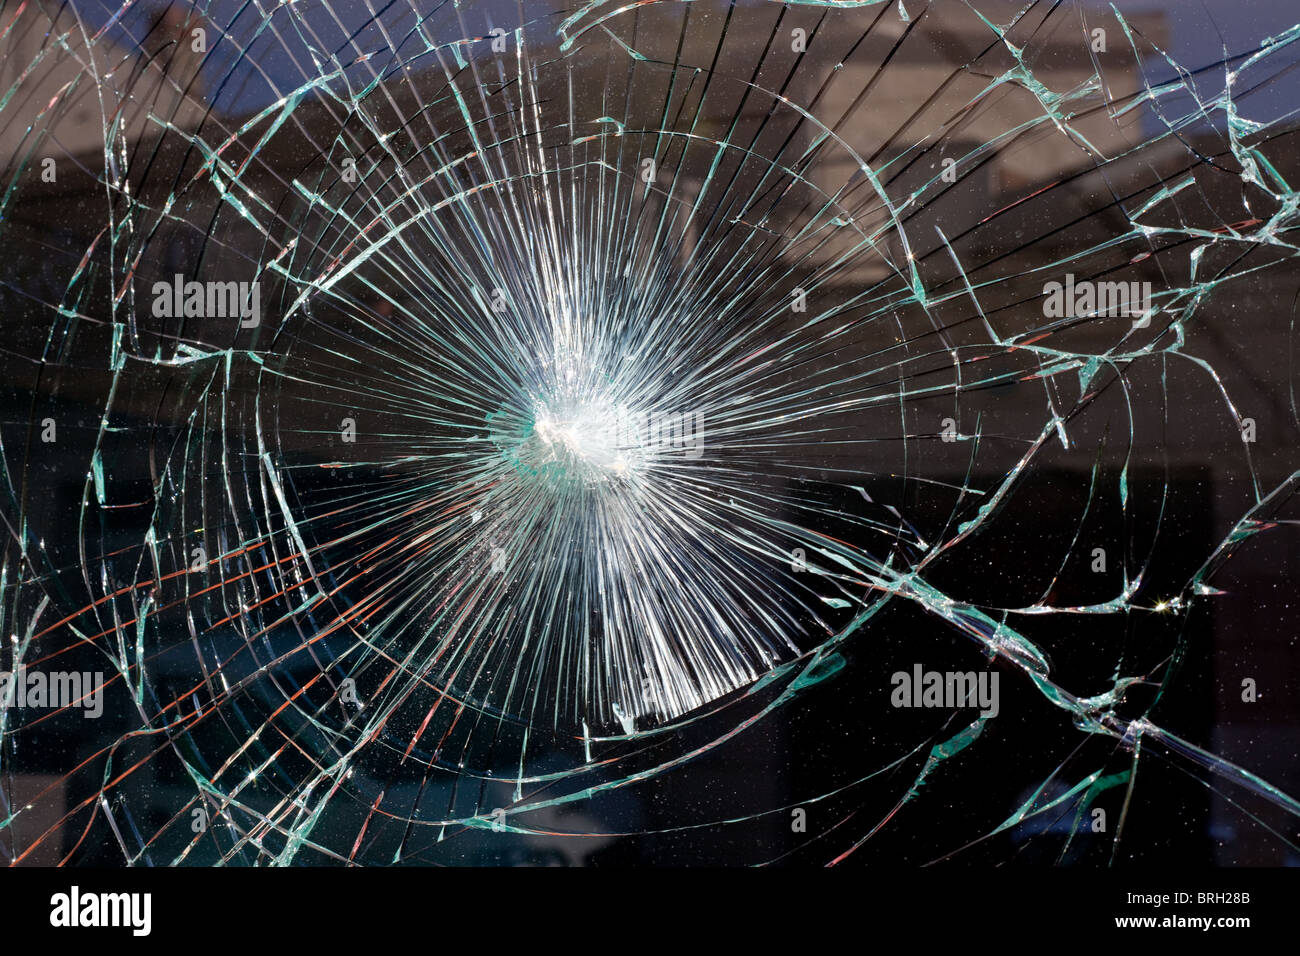 broken window glass like a spider web with building reflection - Stock Image